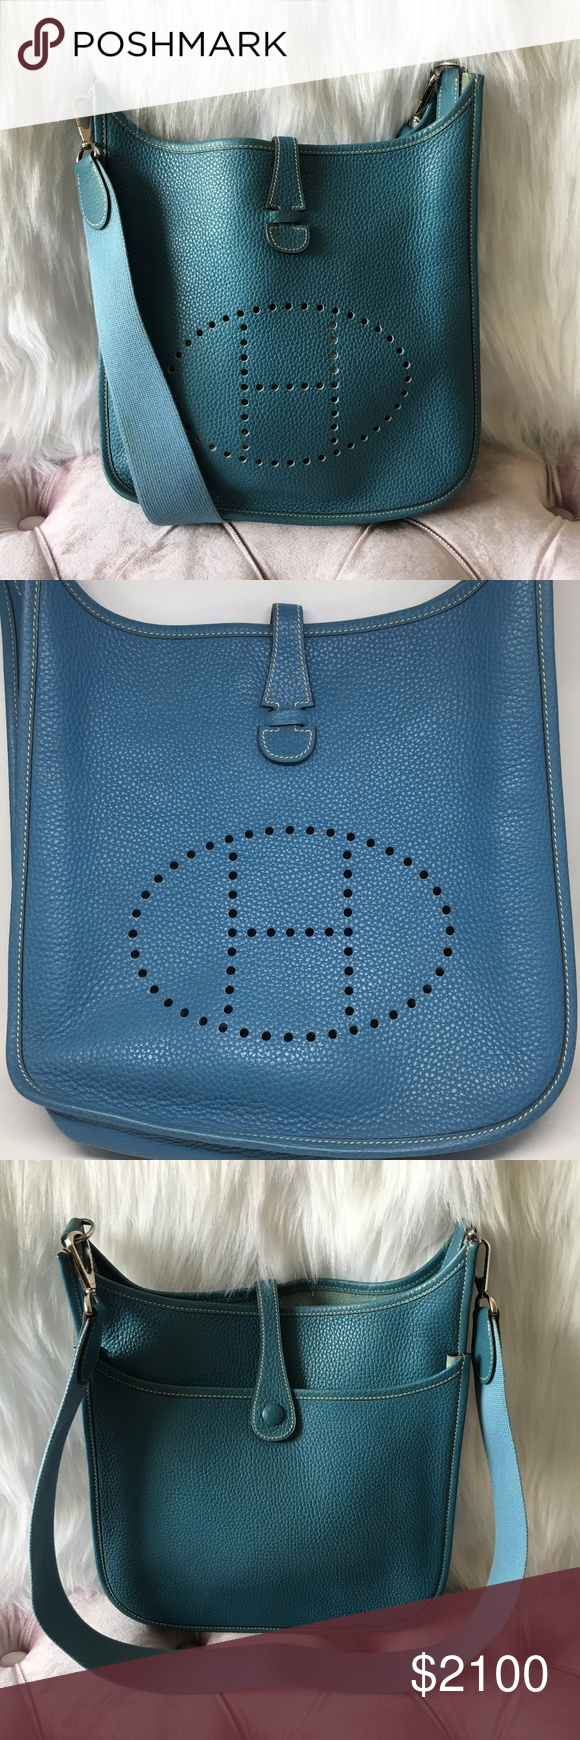 Hermès Evelyne II Pm Togo Agate Cuivre Clemence Pre-owned Est Retail    3 0fa8267151ac4